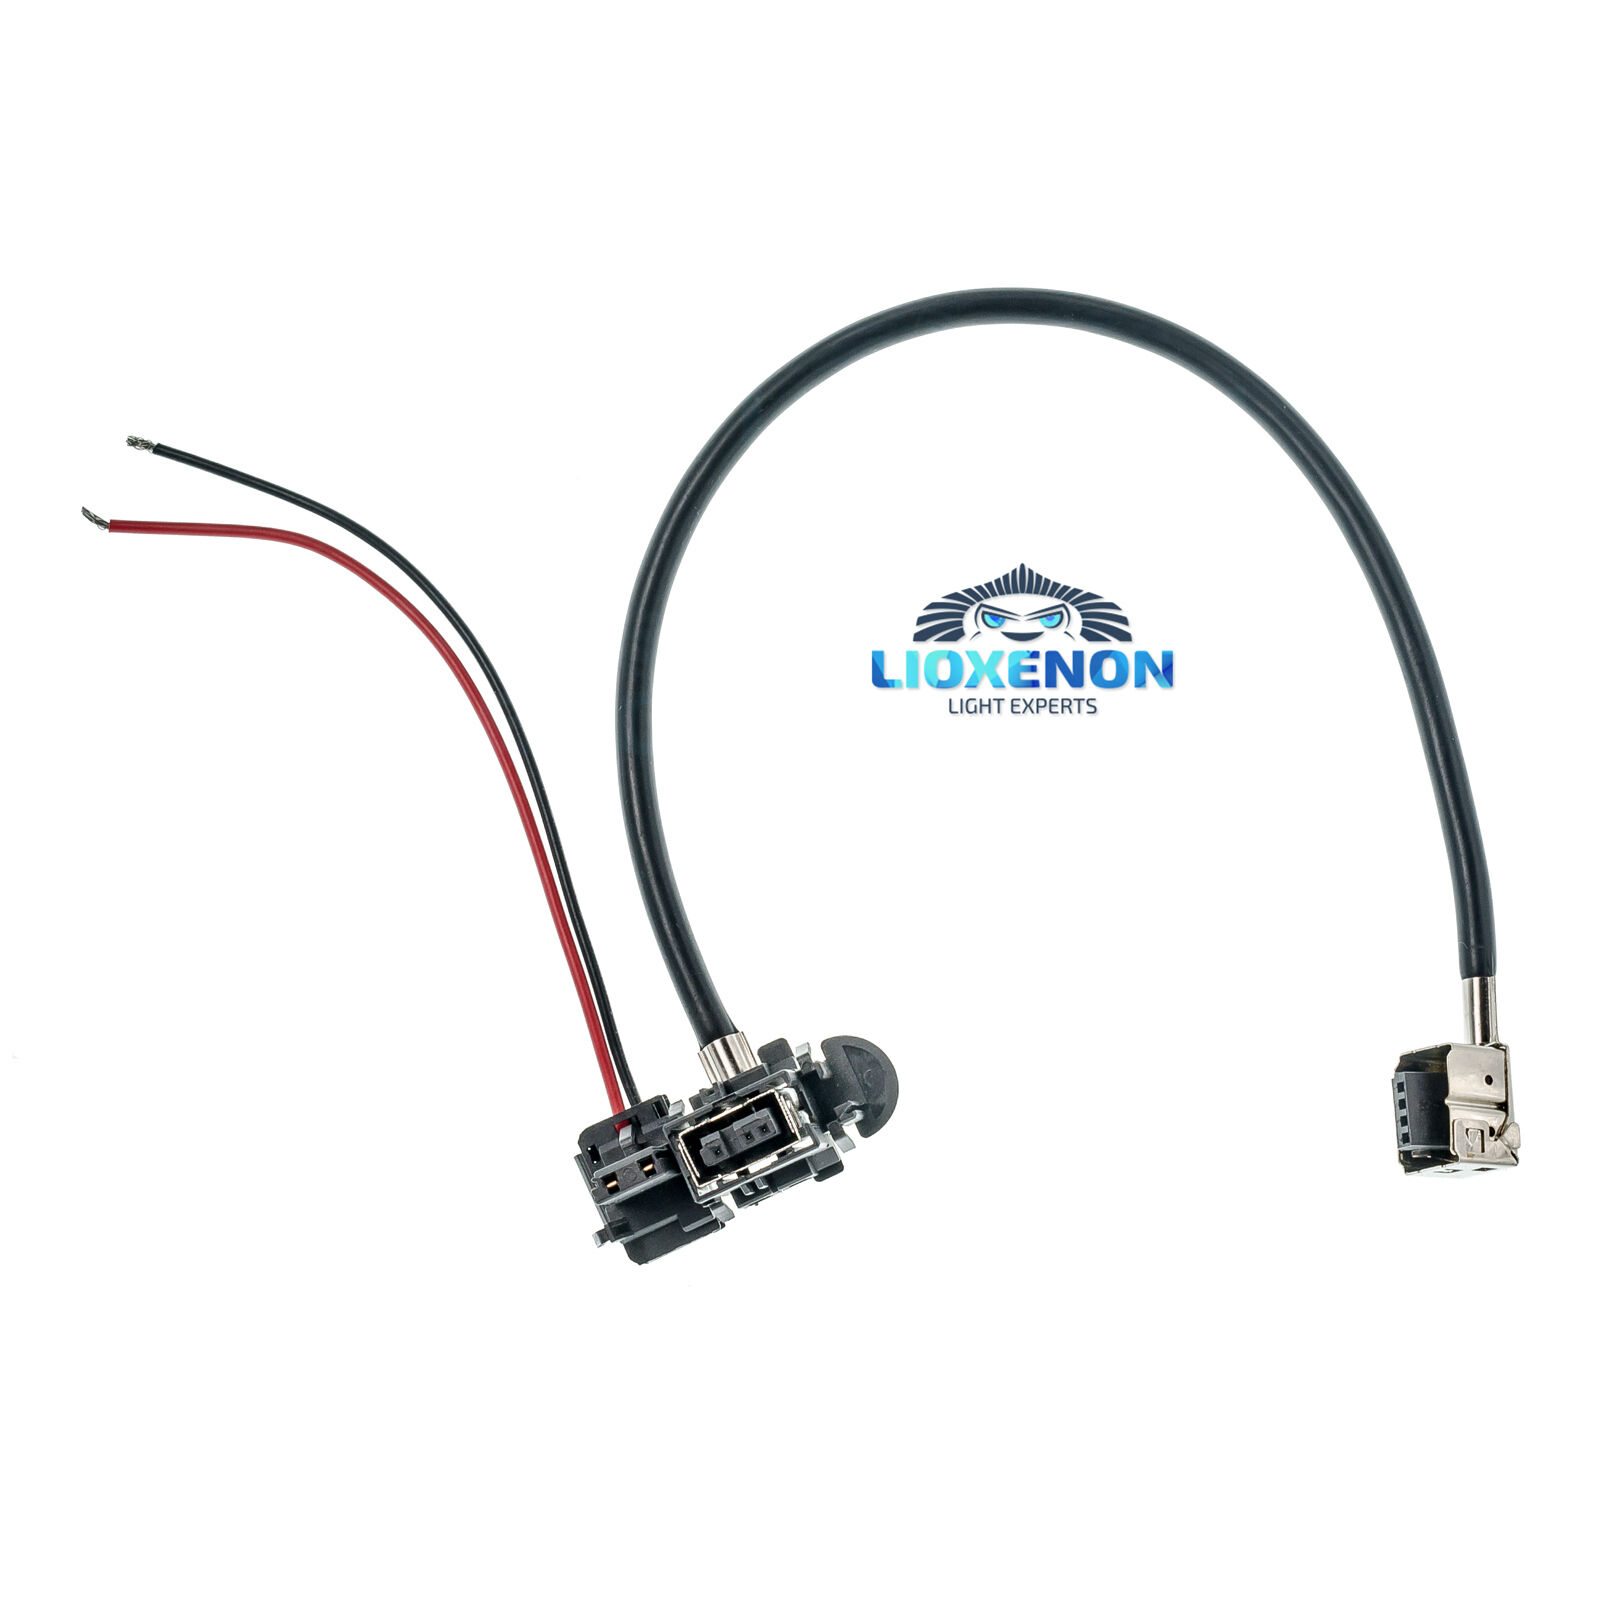 Cable Wire For Hella 5dv 009 000 00 Headlight Headlamp